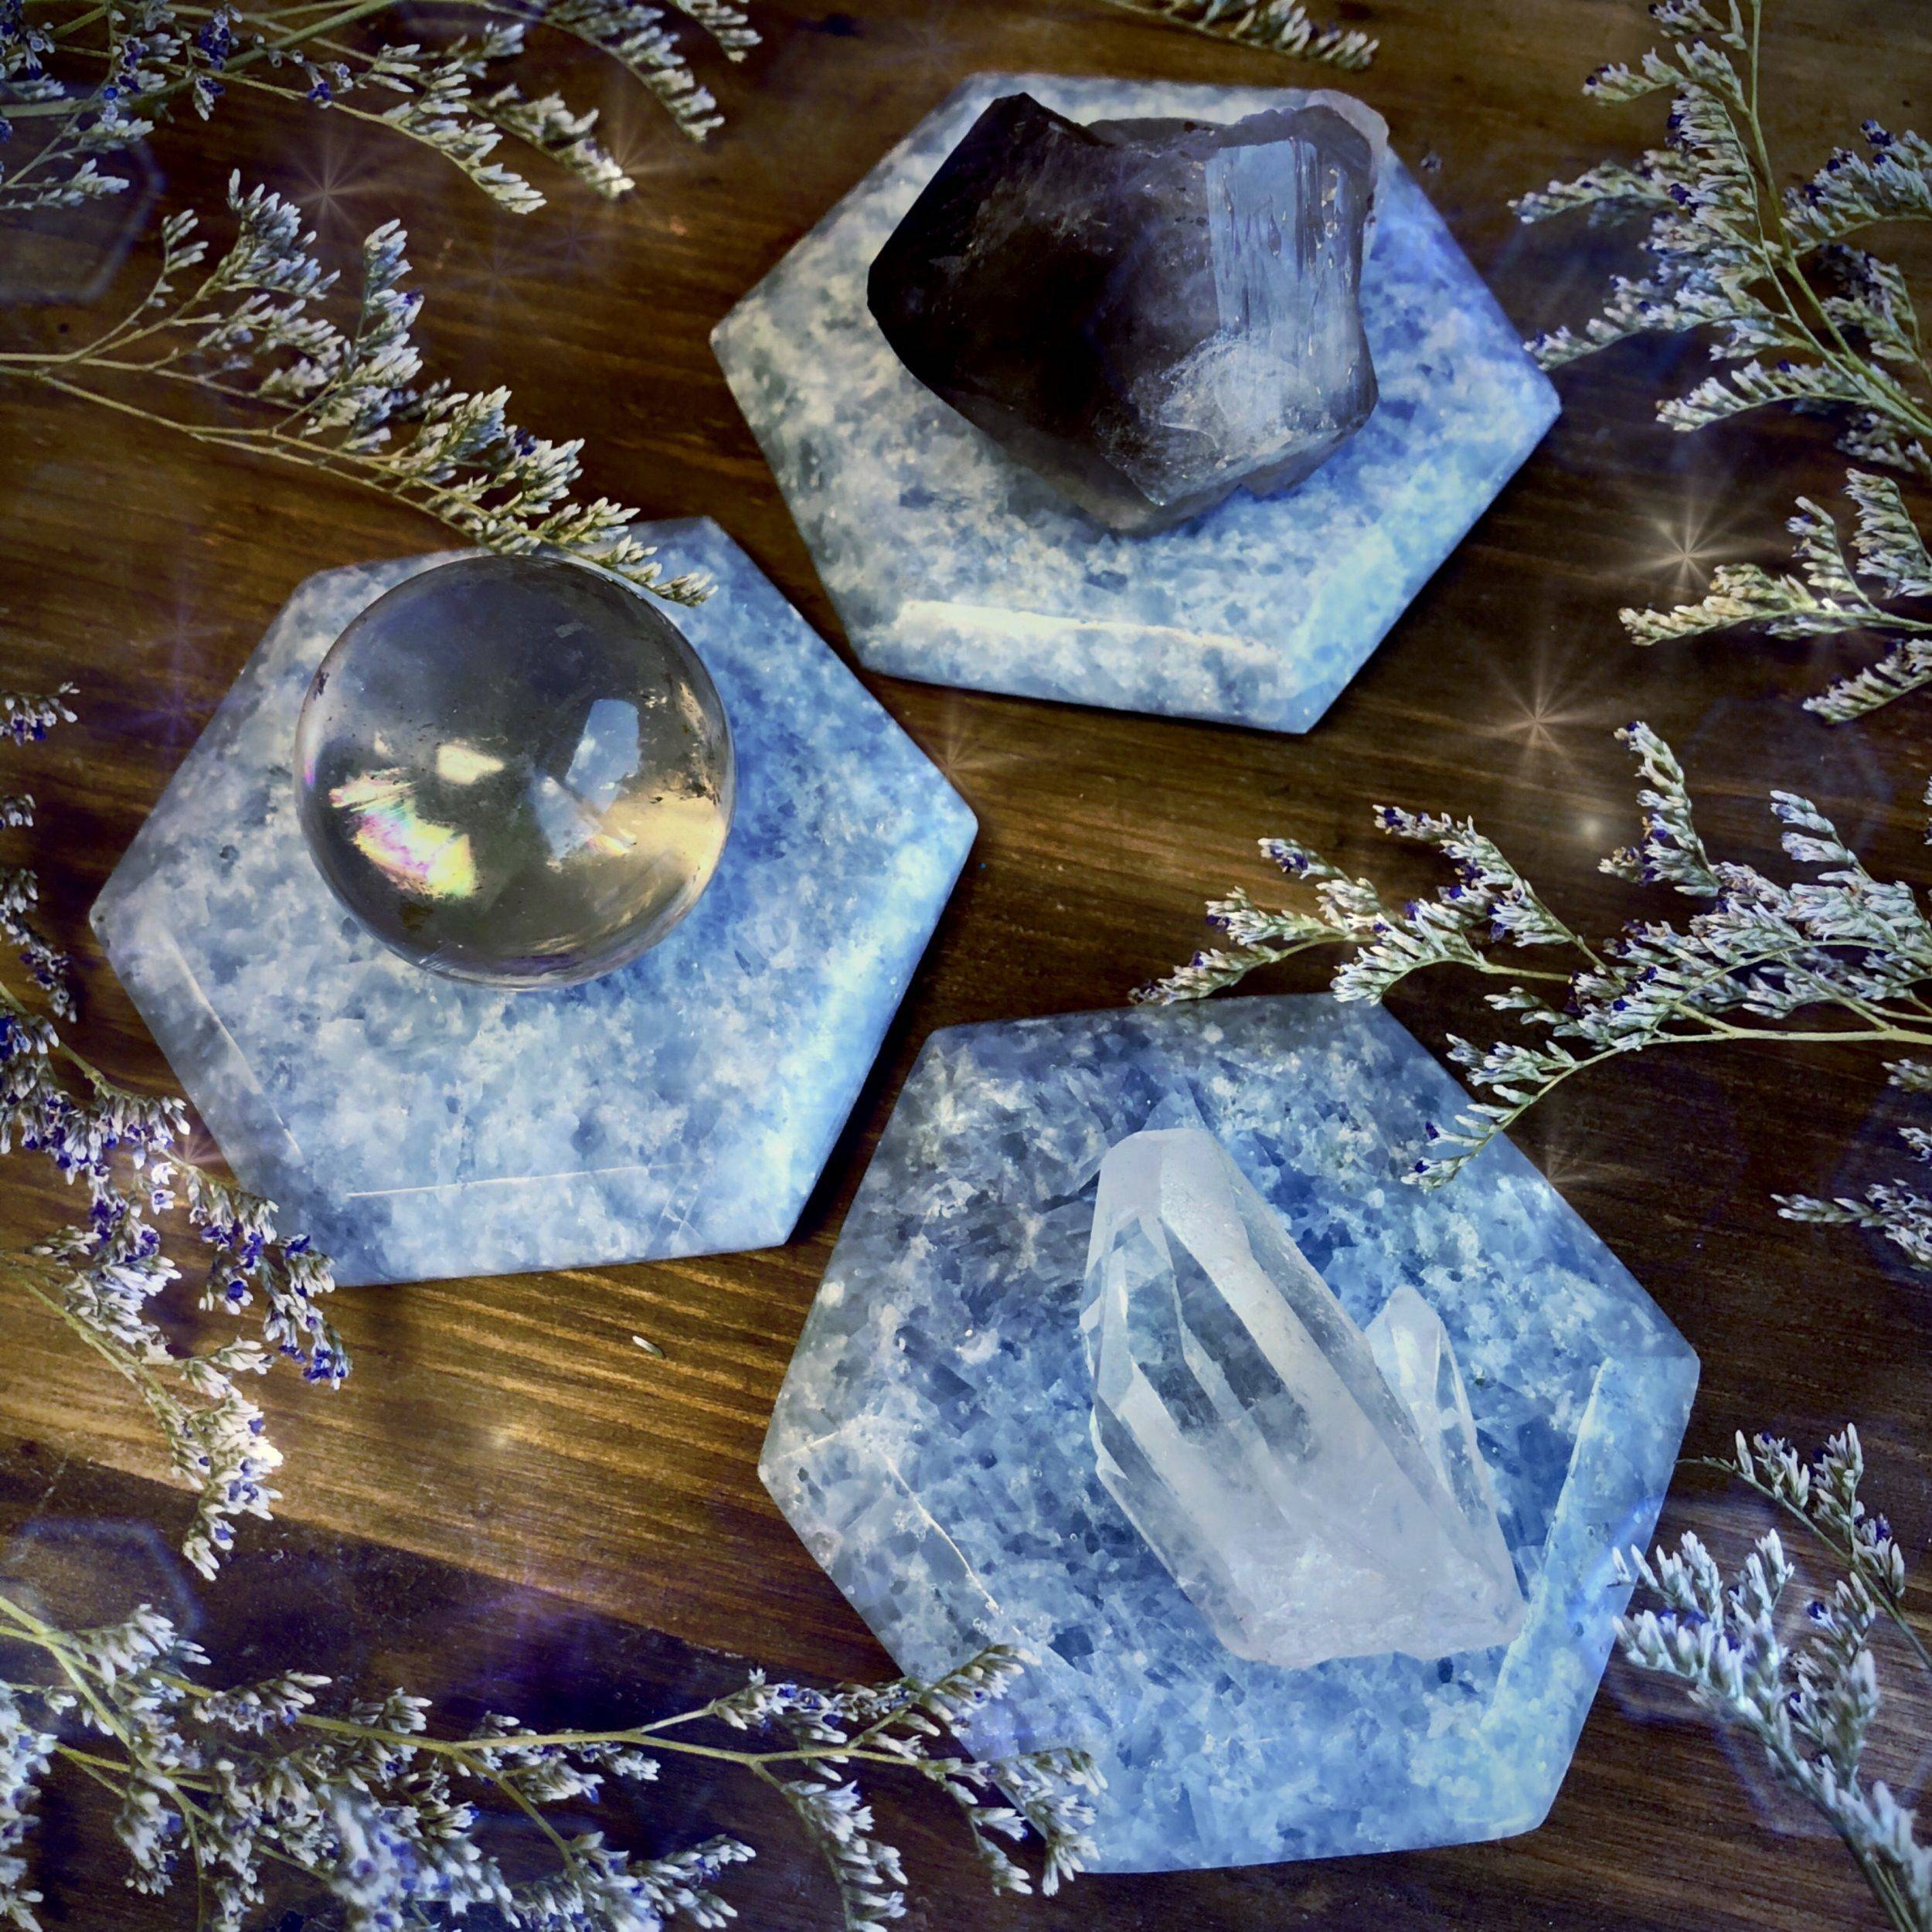 Peaceful_Activation_Charging_Plates_3of3_10_18